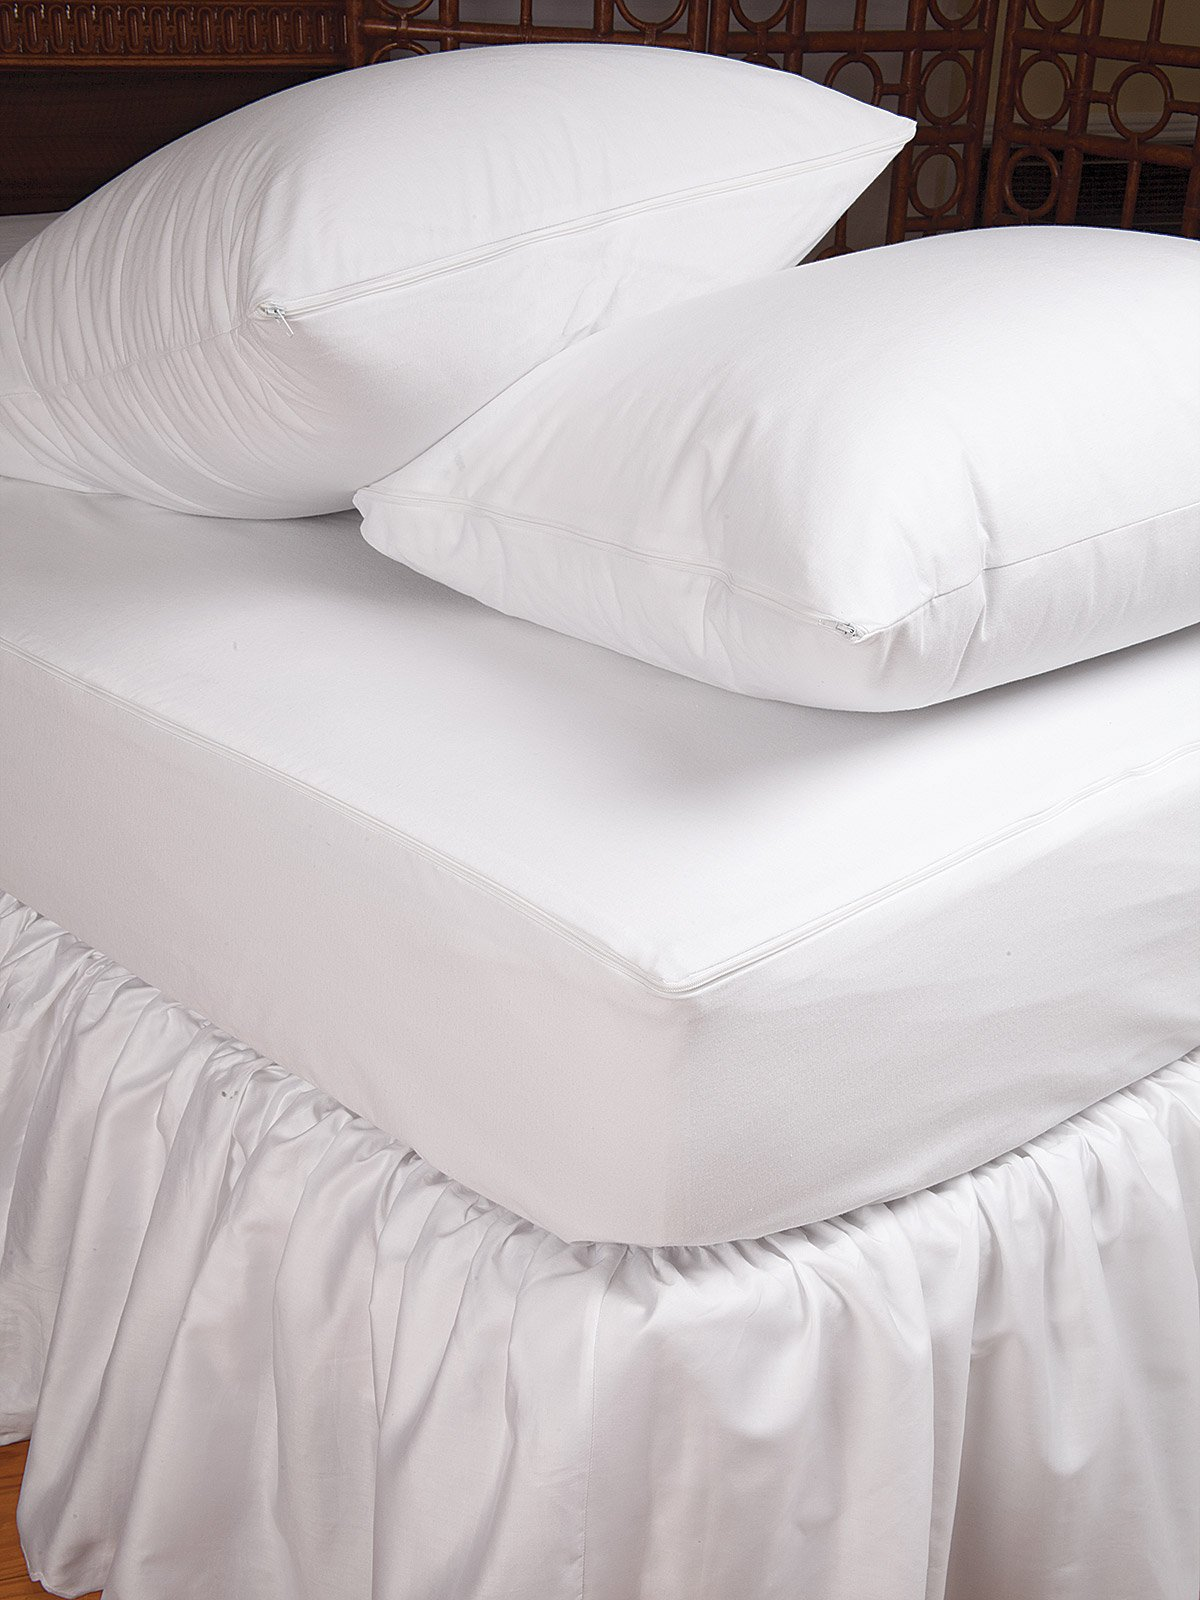 Bed Bug Protectors Luxury Bedding Italian Bed Linens